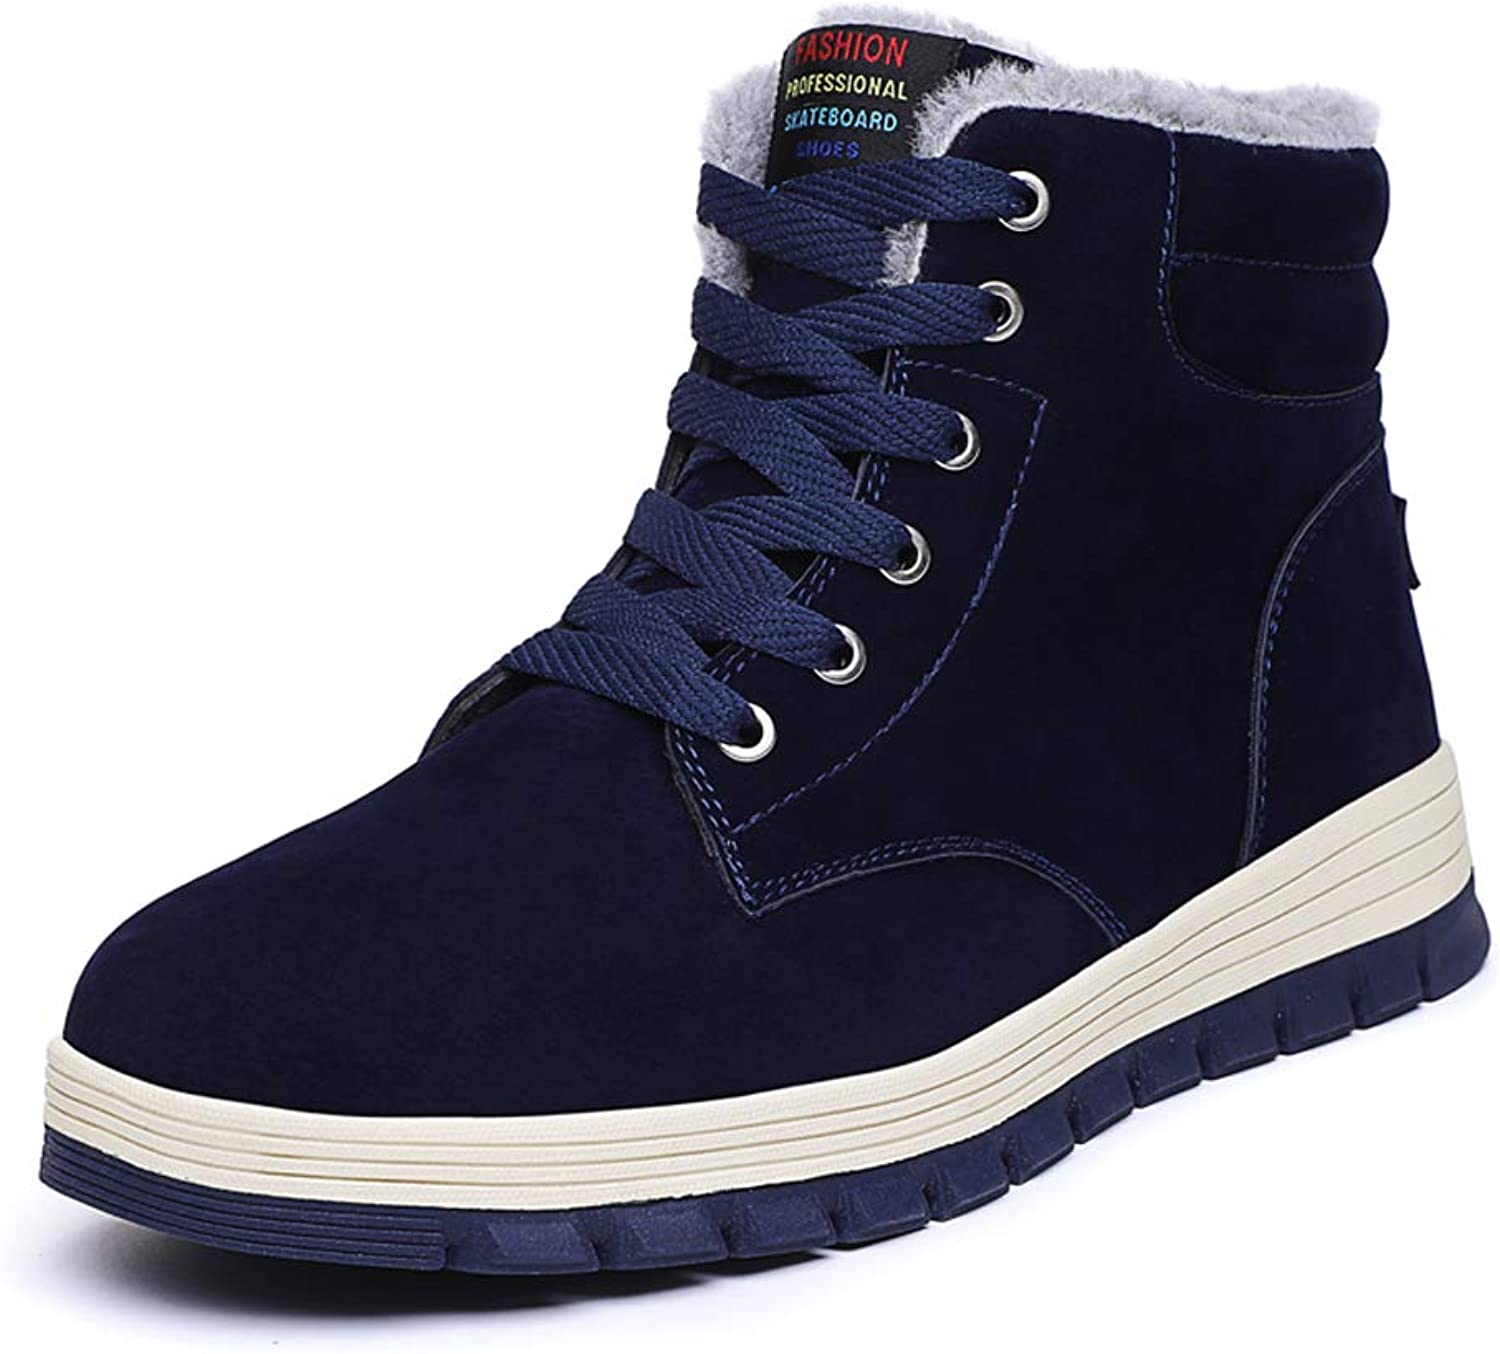 Wetrics Snow Boots Men Fur Lined Leather Winter Sneakers Ankle Booties Lace Up Outdoor Sports shoes